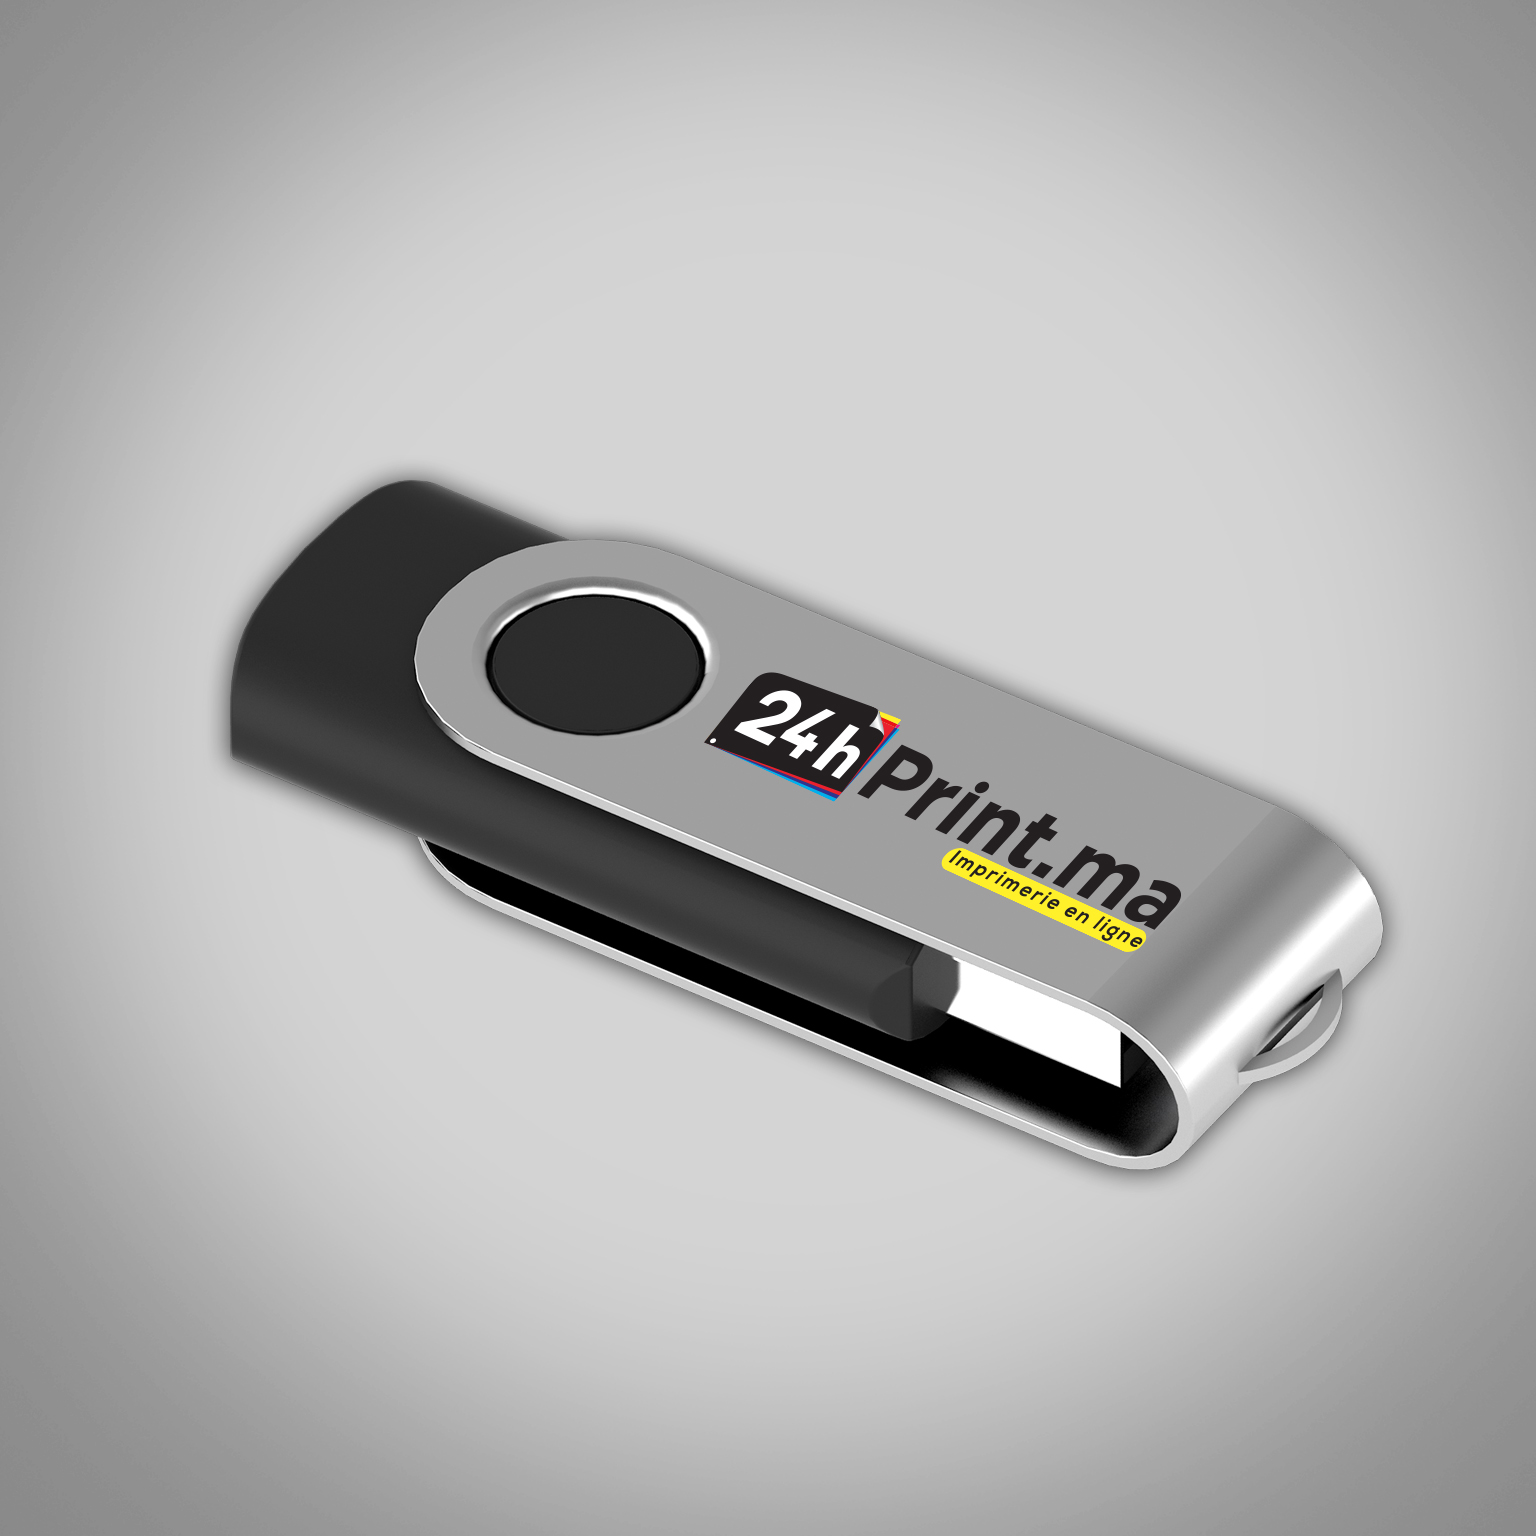 https://www.24hprint.ma/images/products_gallery_images/MOCKP_-_CLe_USB_3.jpg